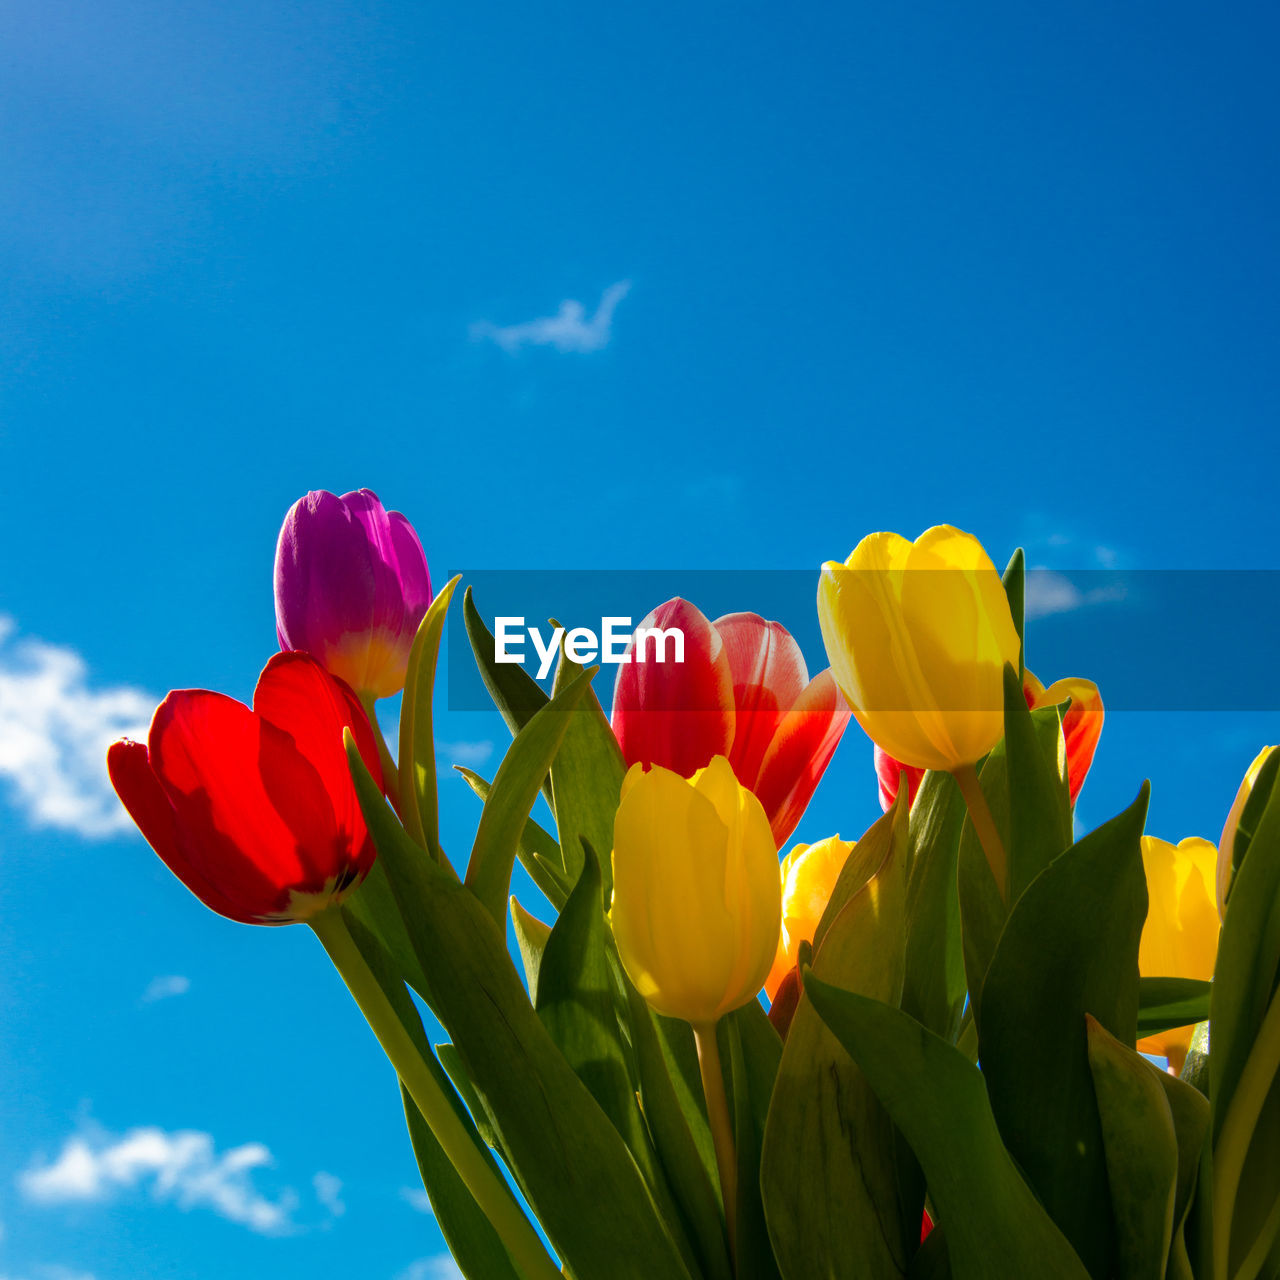 flowering plant, flower, beauty in nature, vulnerability, fragility, plant, petal, freshness, sky, nature, growth, flower head, tulip, close-up, inflorescence, yellow, low angle view, no people, blue, day, outdoors, springtime, sepal